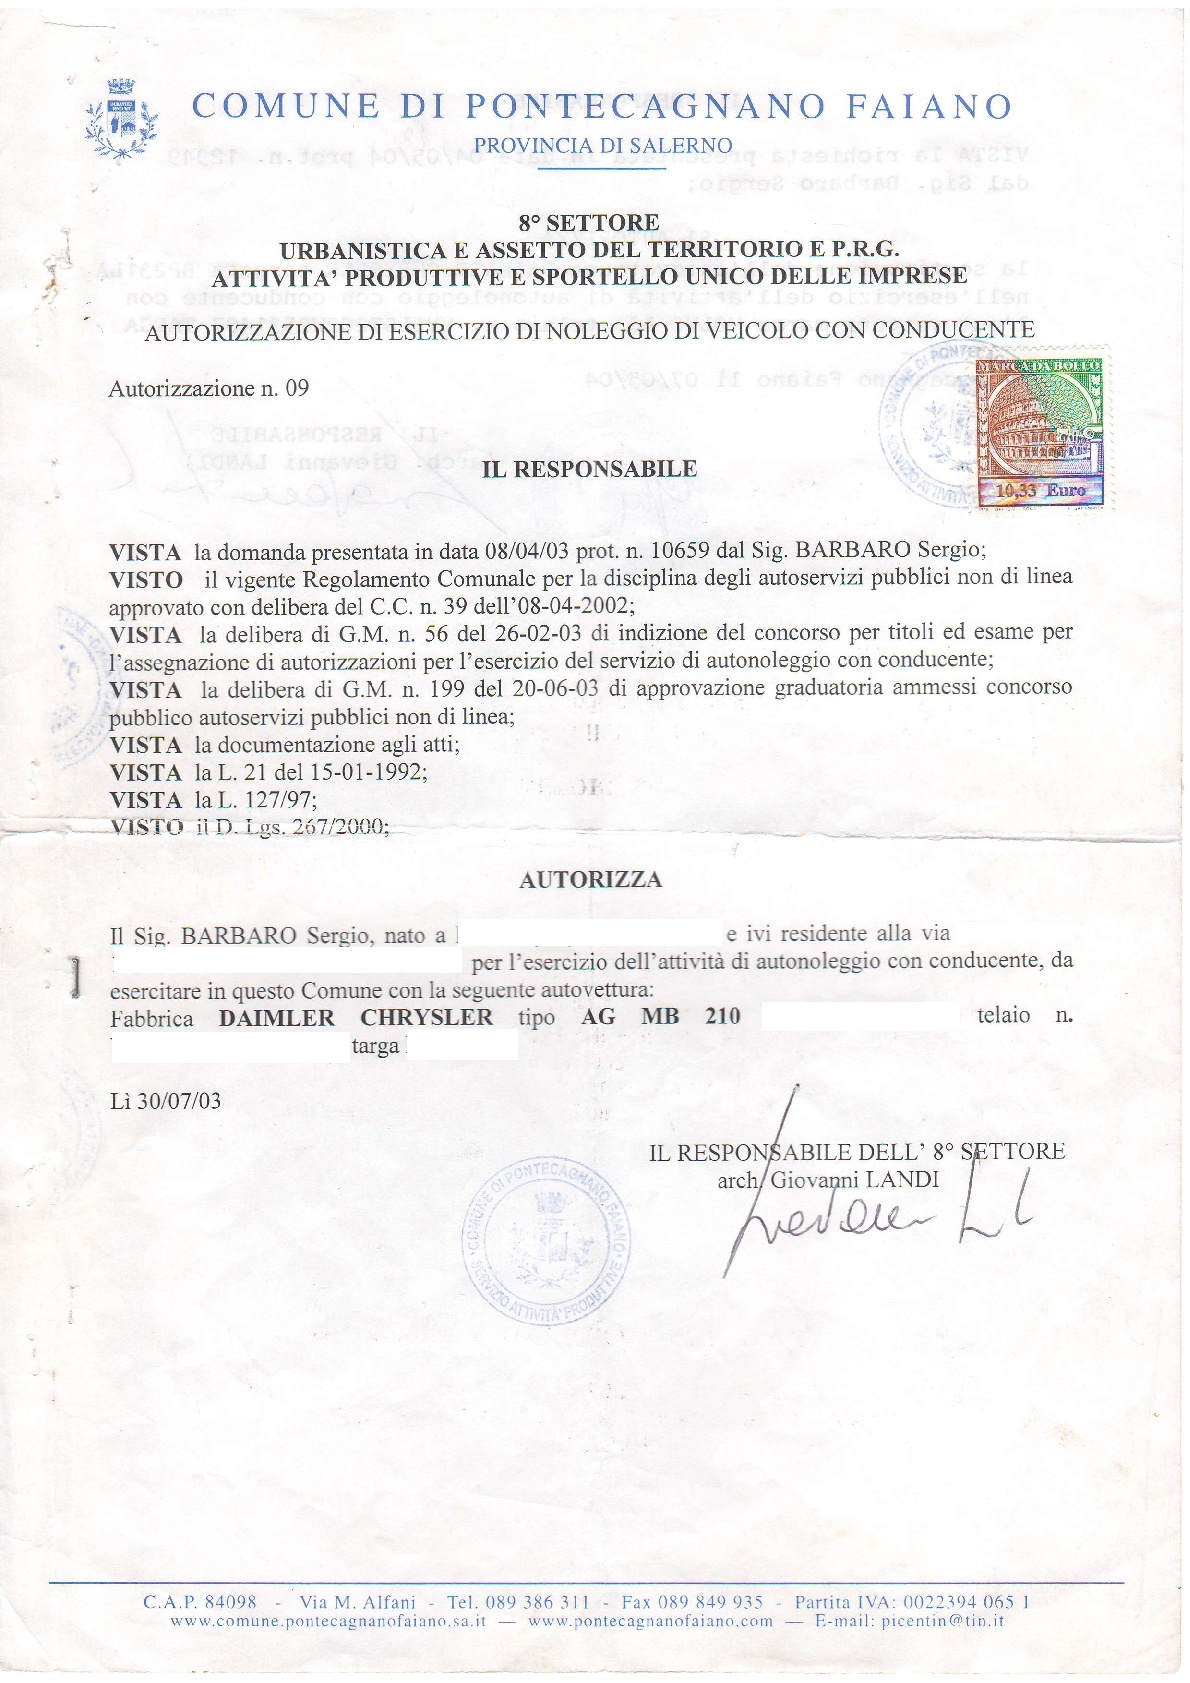 Barbaro Car Service transport licence